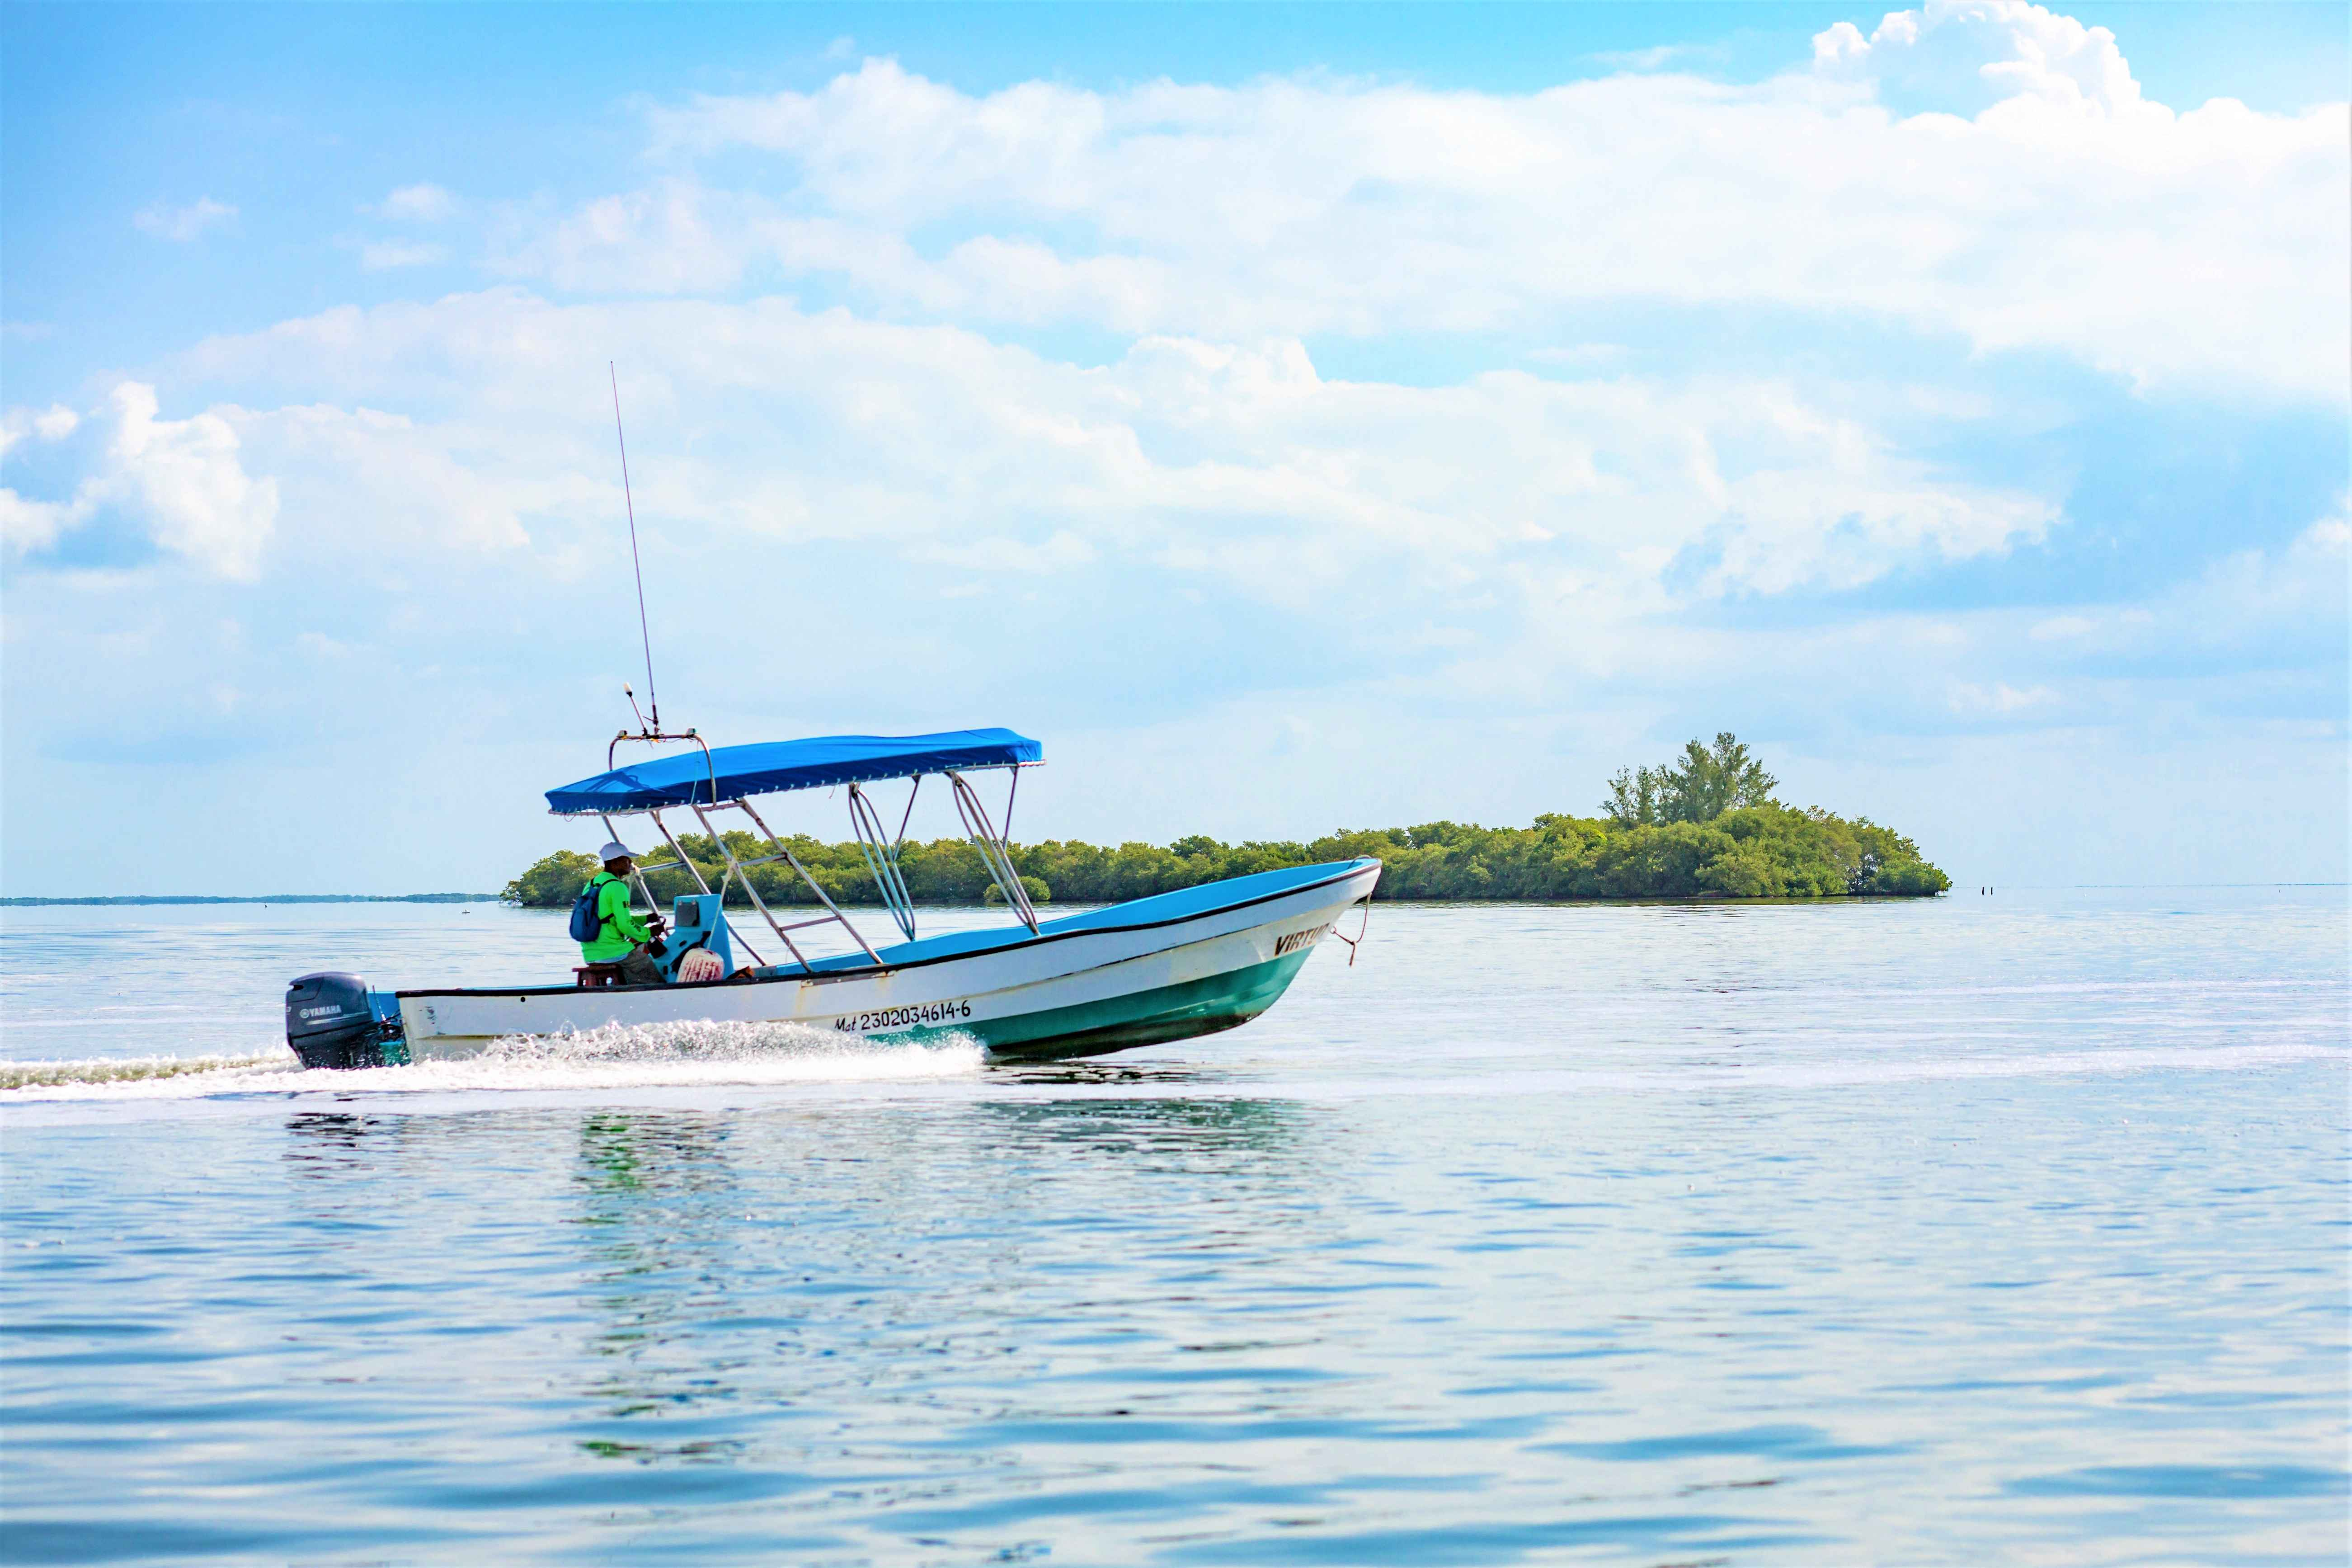 Tour To Holbox Island  - Last Minute Tours in Cancún and Riviera Maya